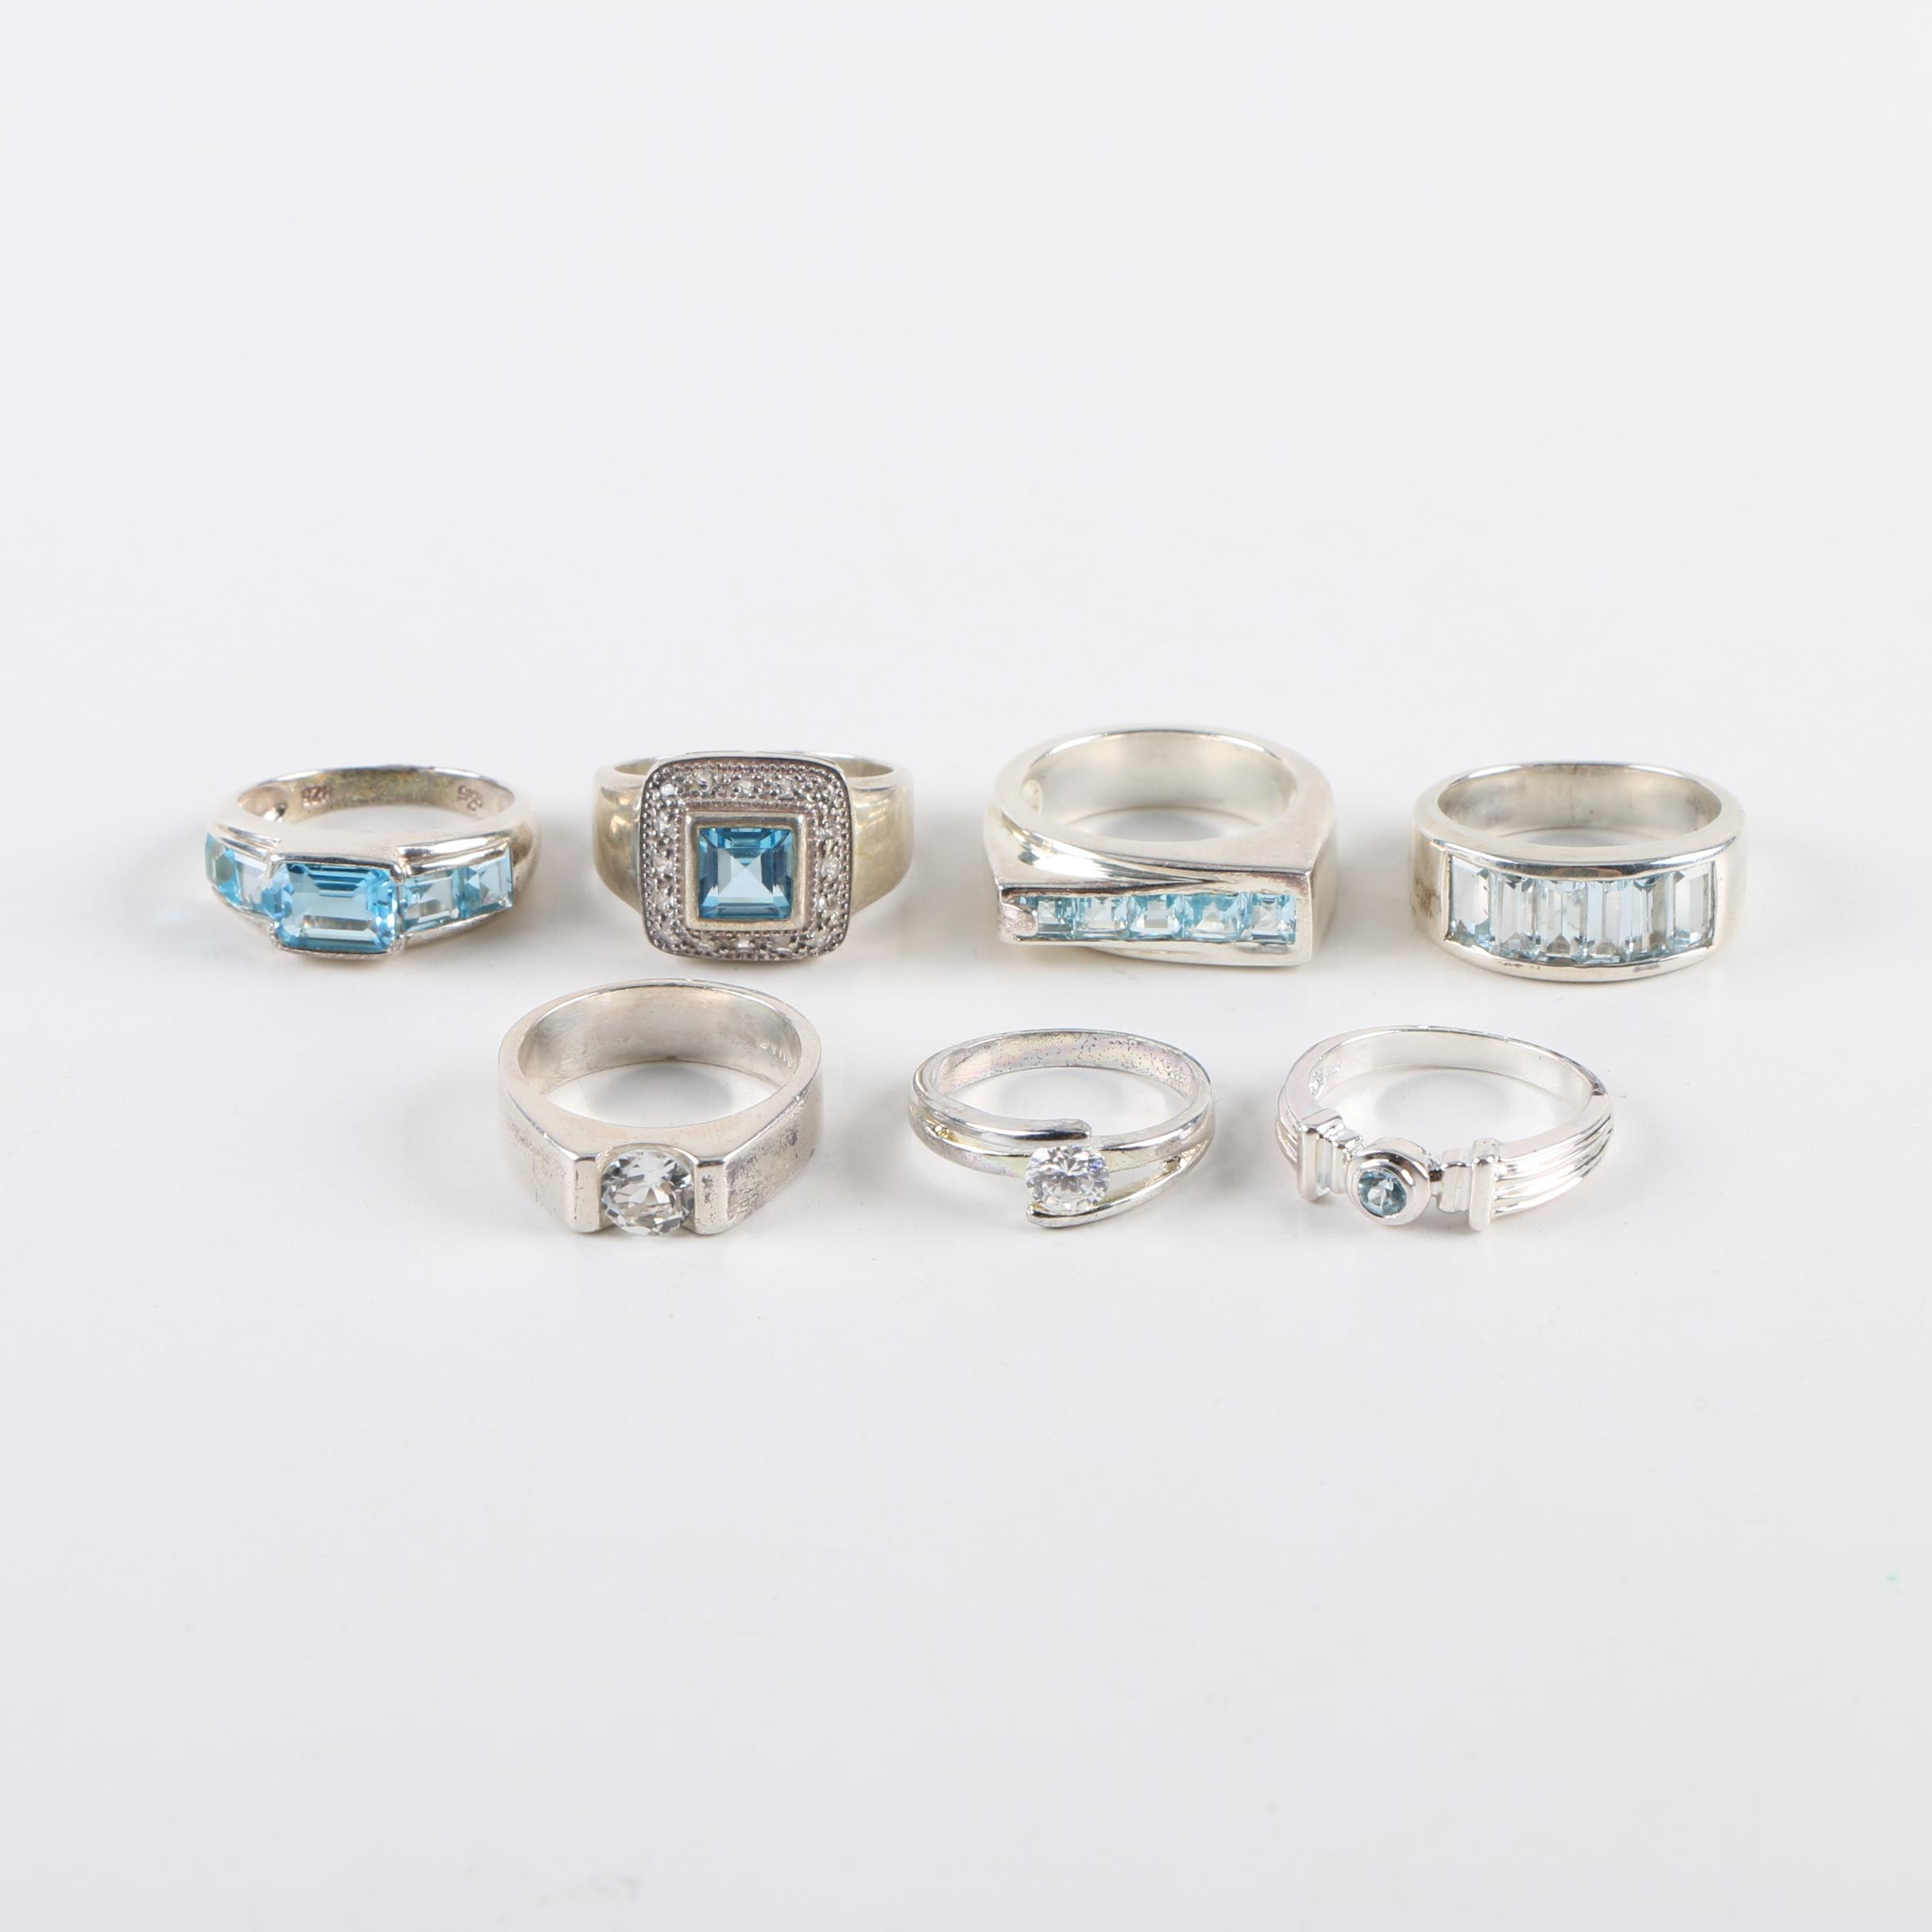 Sterling Silver Ring Selection Including Blue and White Topaz